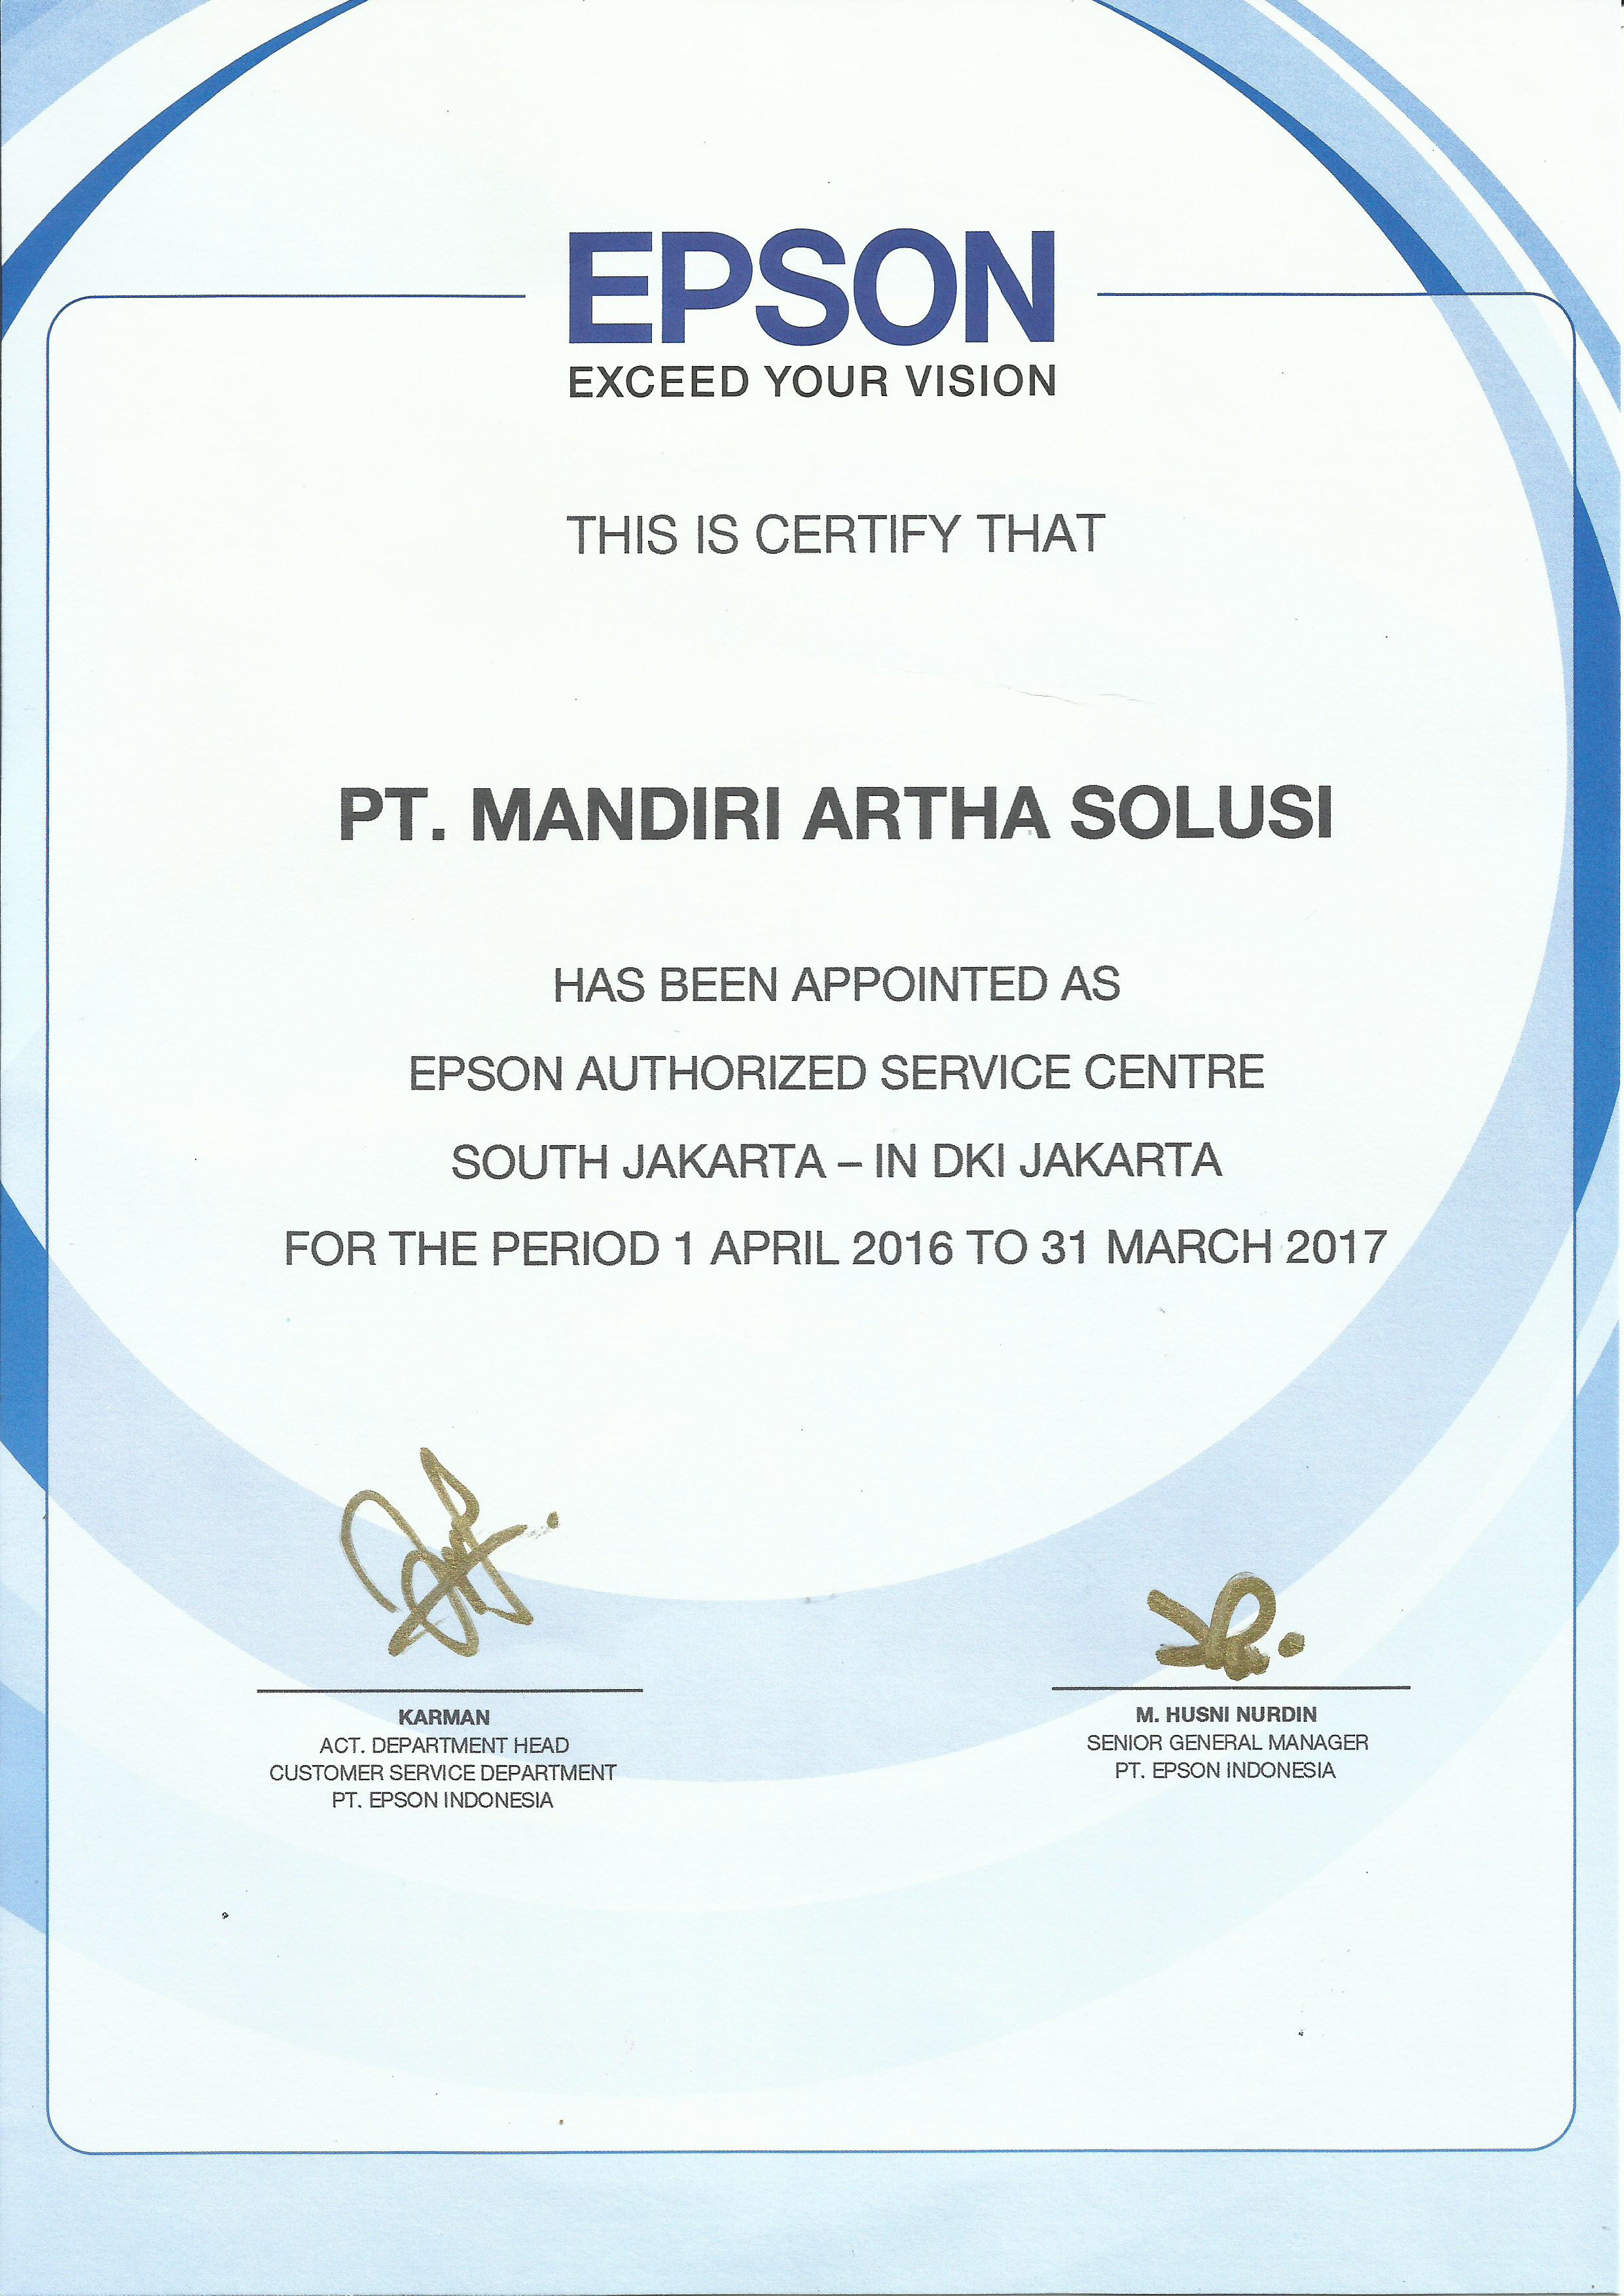 epson authorized service centre certificate